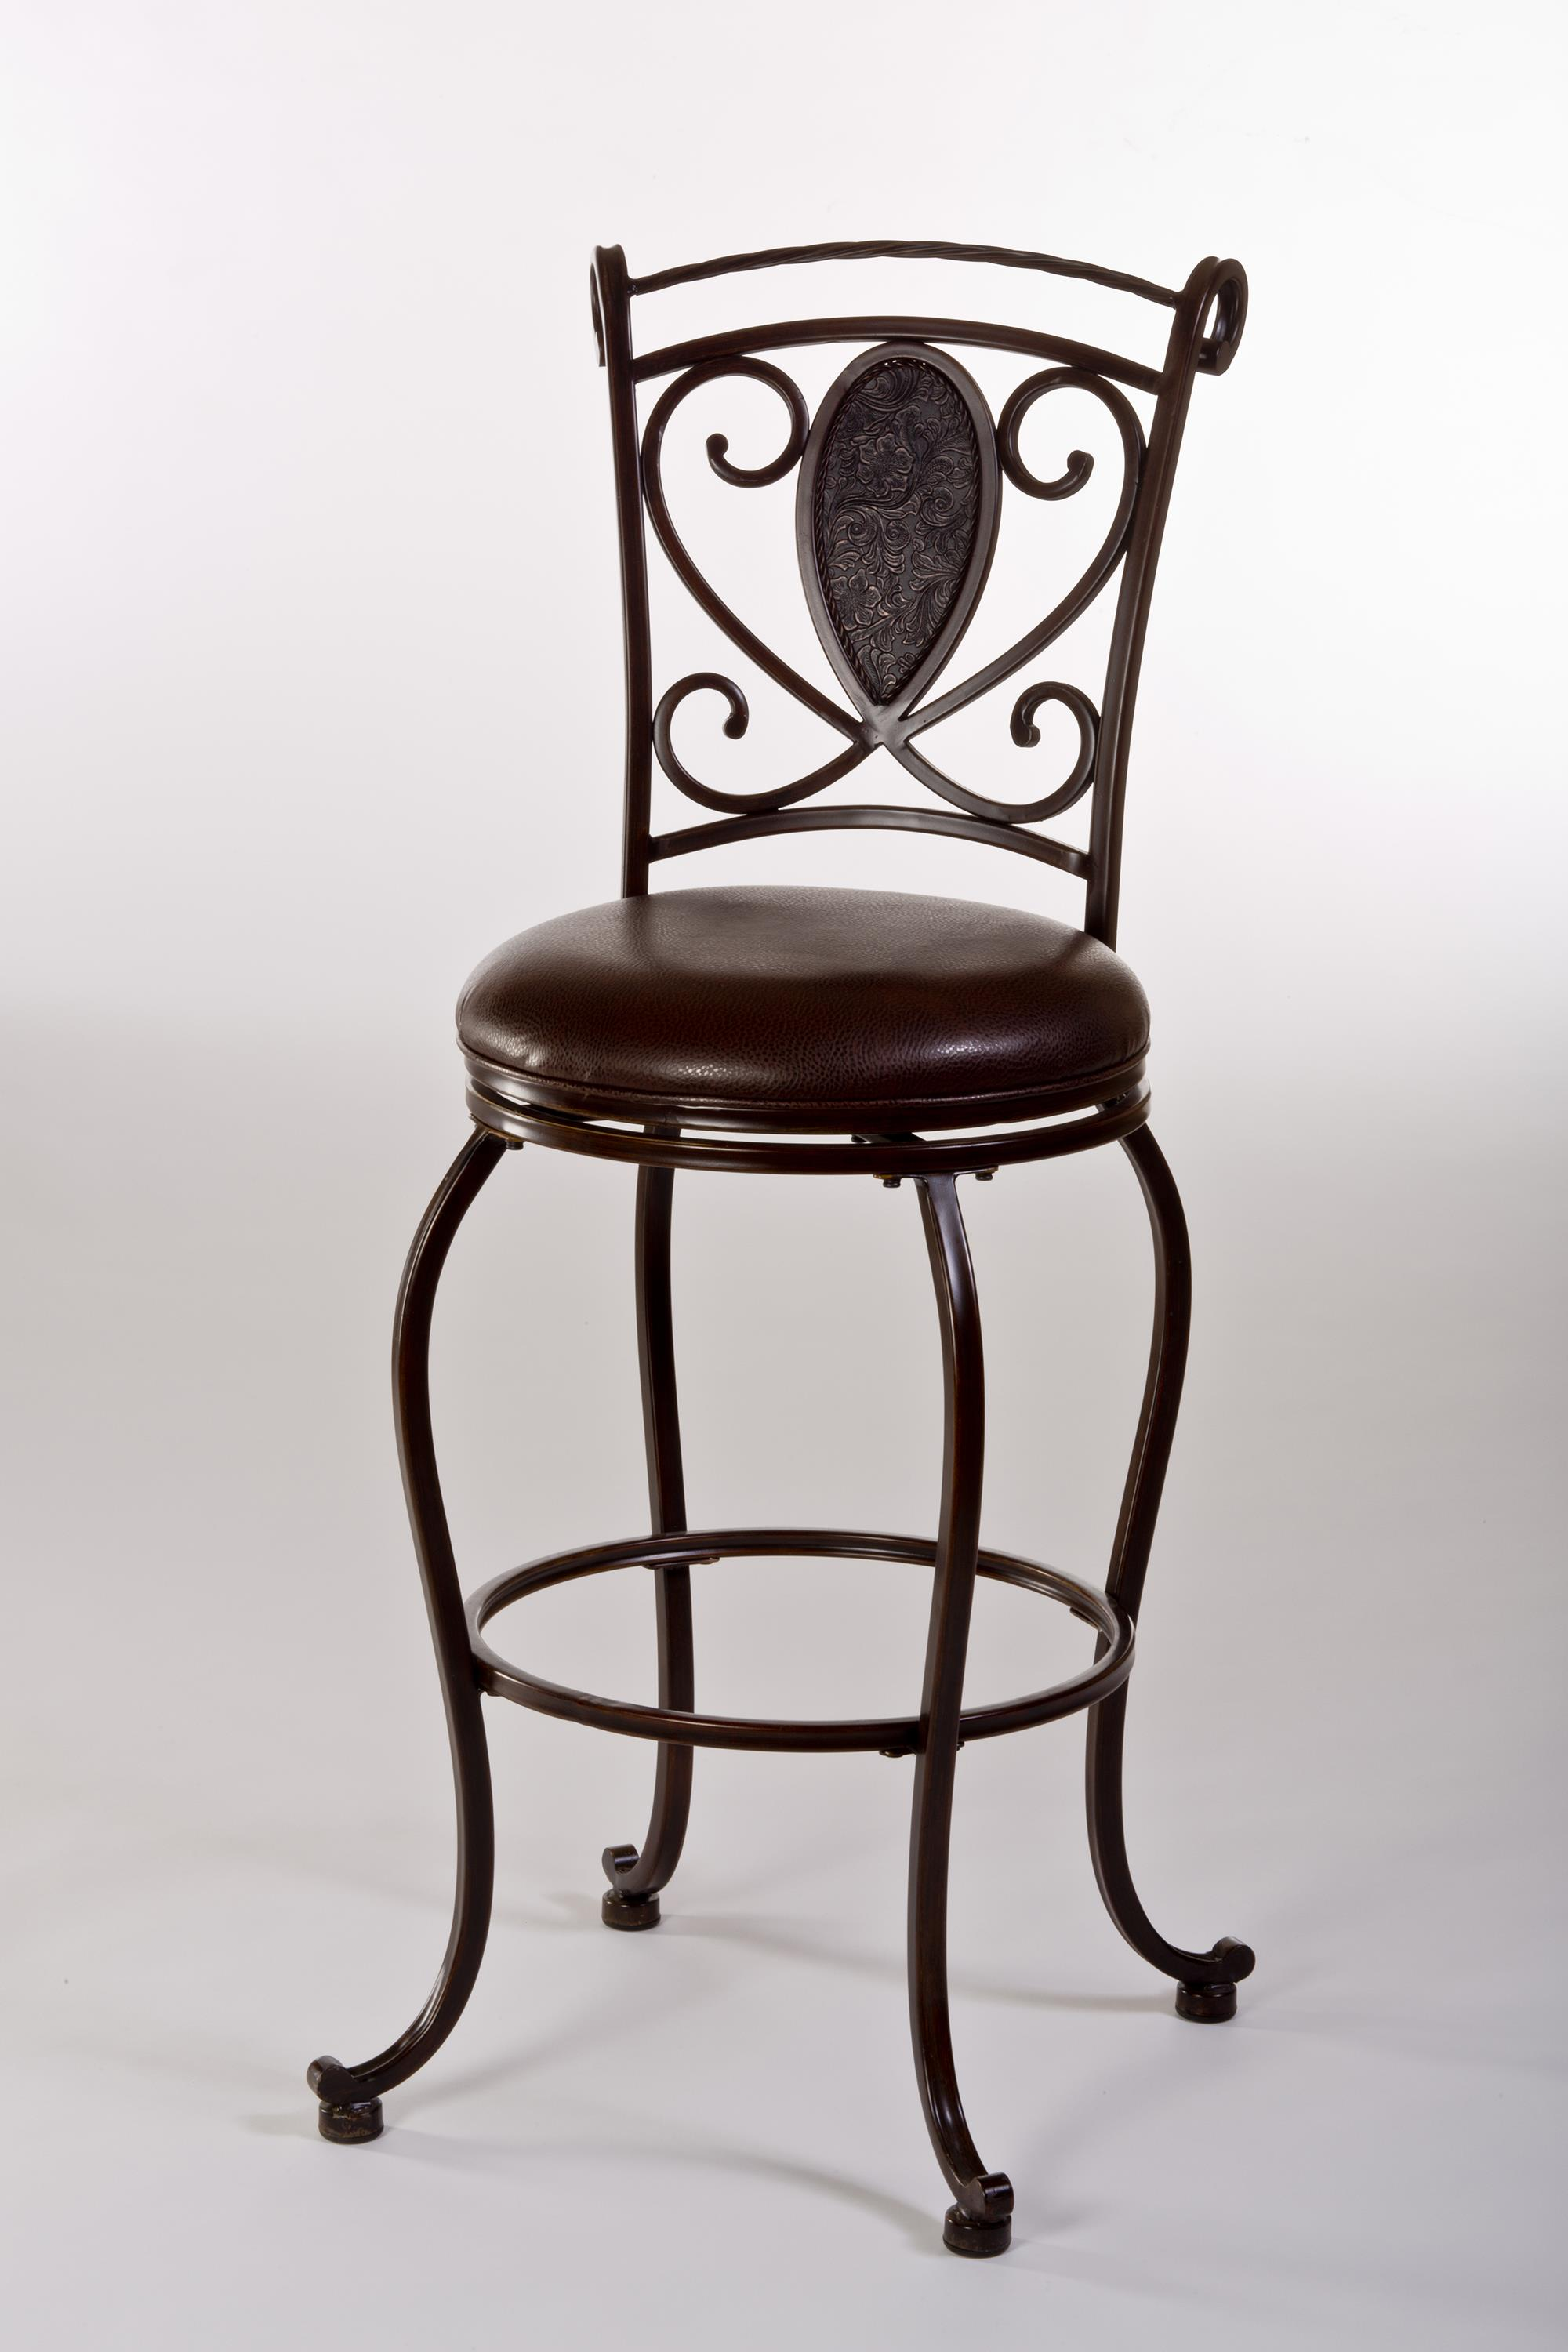 Hillsdale Metal Stools Scarton Swivel Counter Stool - Item Number: 5314-826